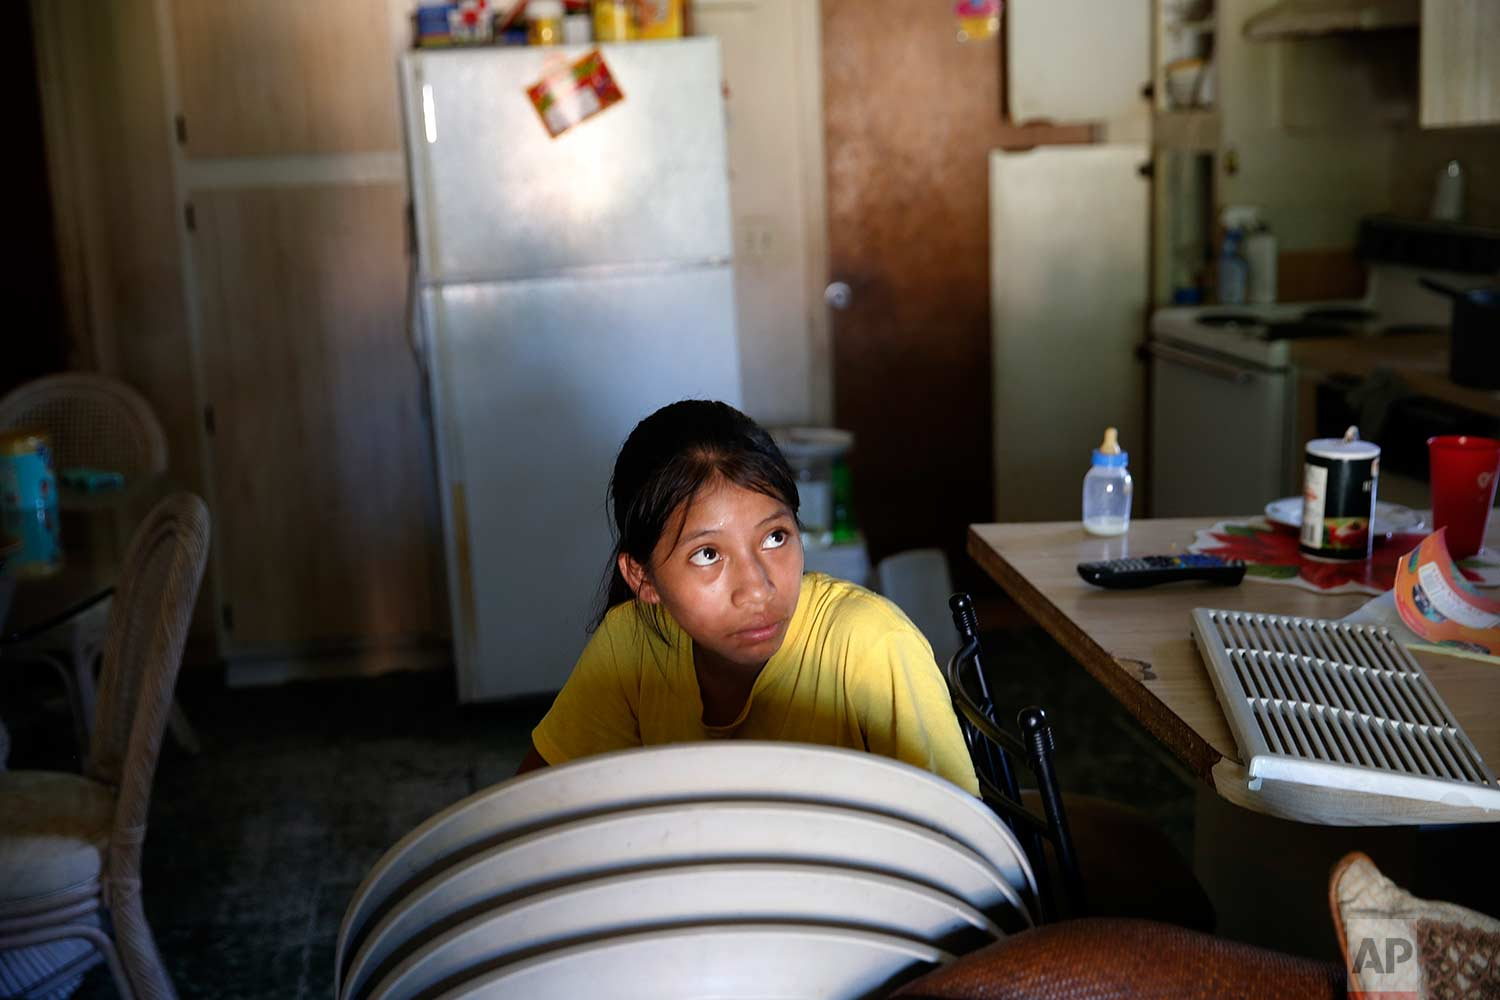 In this Sept. 12, 2017 photo, Andrea Sevation sits in her family home, with the front open for light due to losing power from Hurricane Irma, in Immokalee, Fla. Her father spent $600 getting ready for the storm, the equivalent of two weeks pay. (AP Photo/Gerald Herbert)